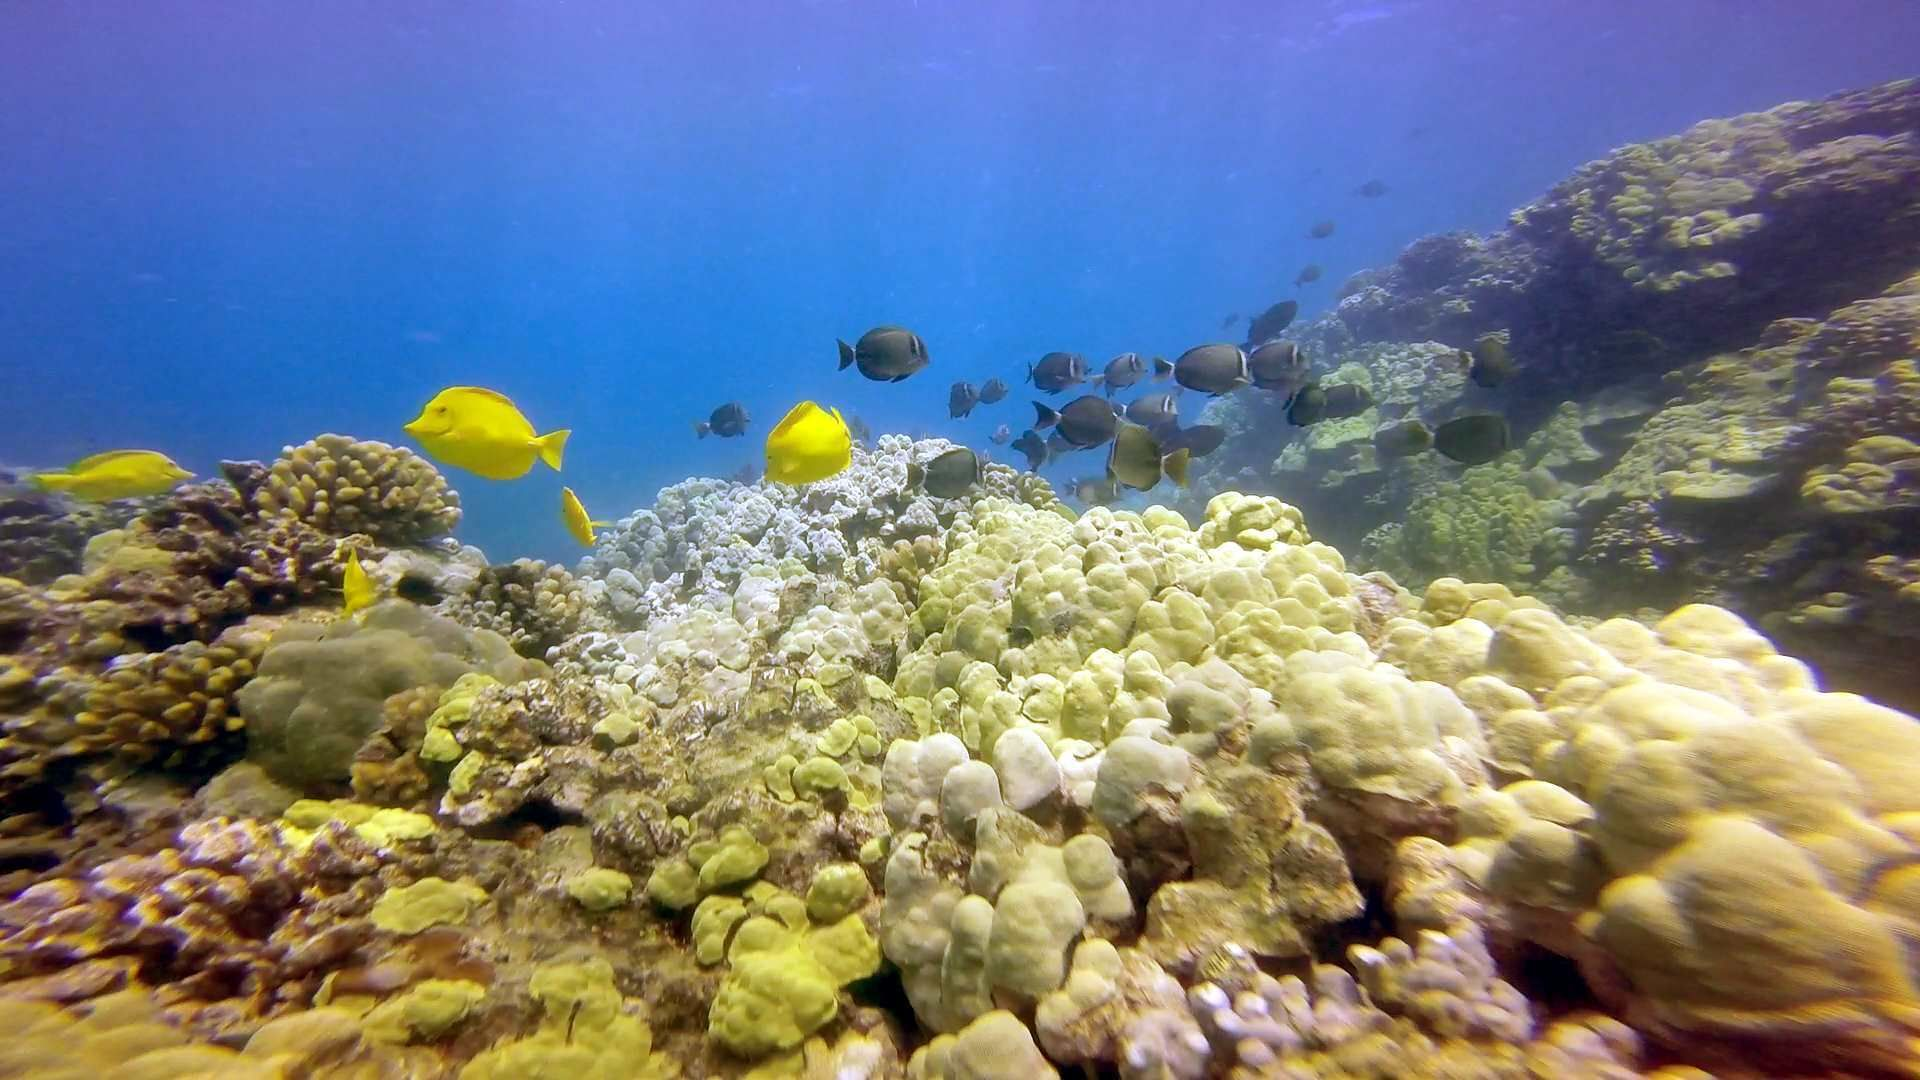 Beautiful fish and coral reef under the water on the Big Island